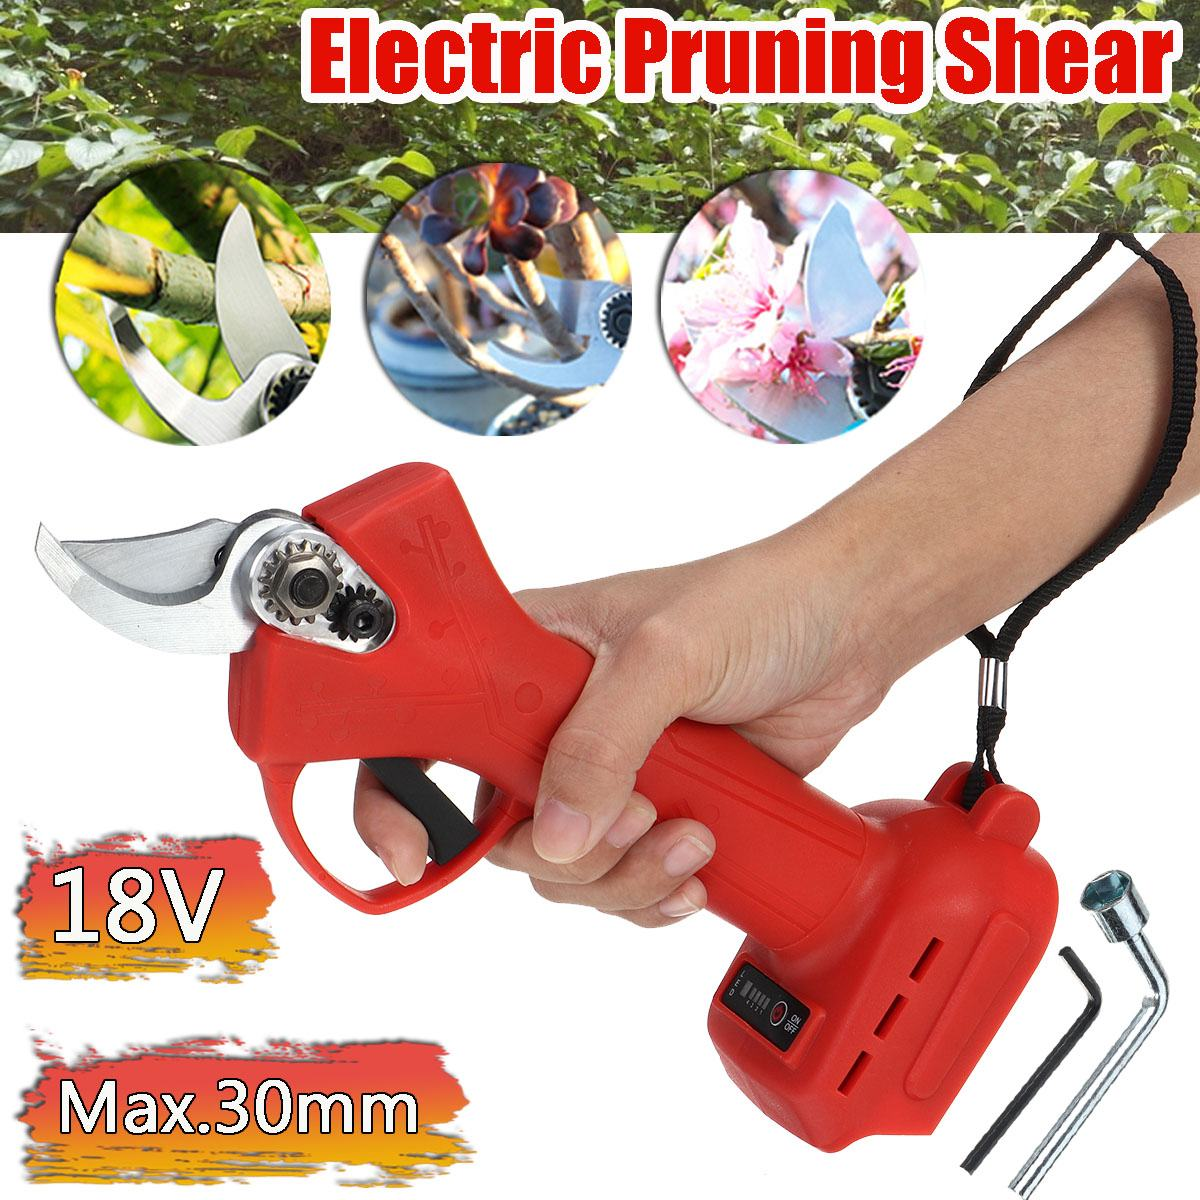 18V Cordless Electric Pruning Shears Fruit Tree Pruning Tool Secateur Without Battery Branch Cutter for Makita 18V Battery